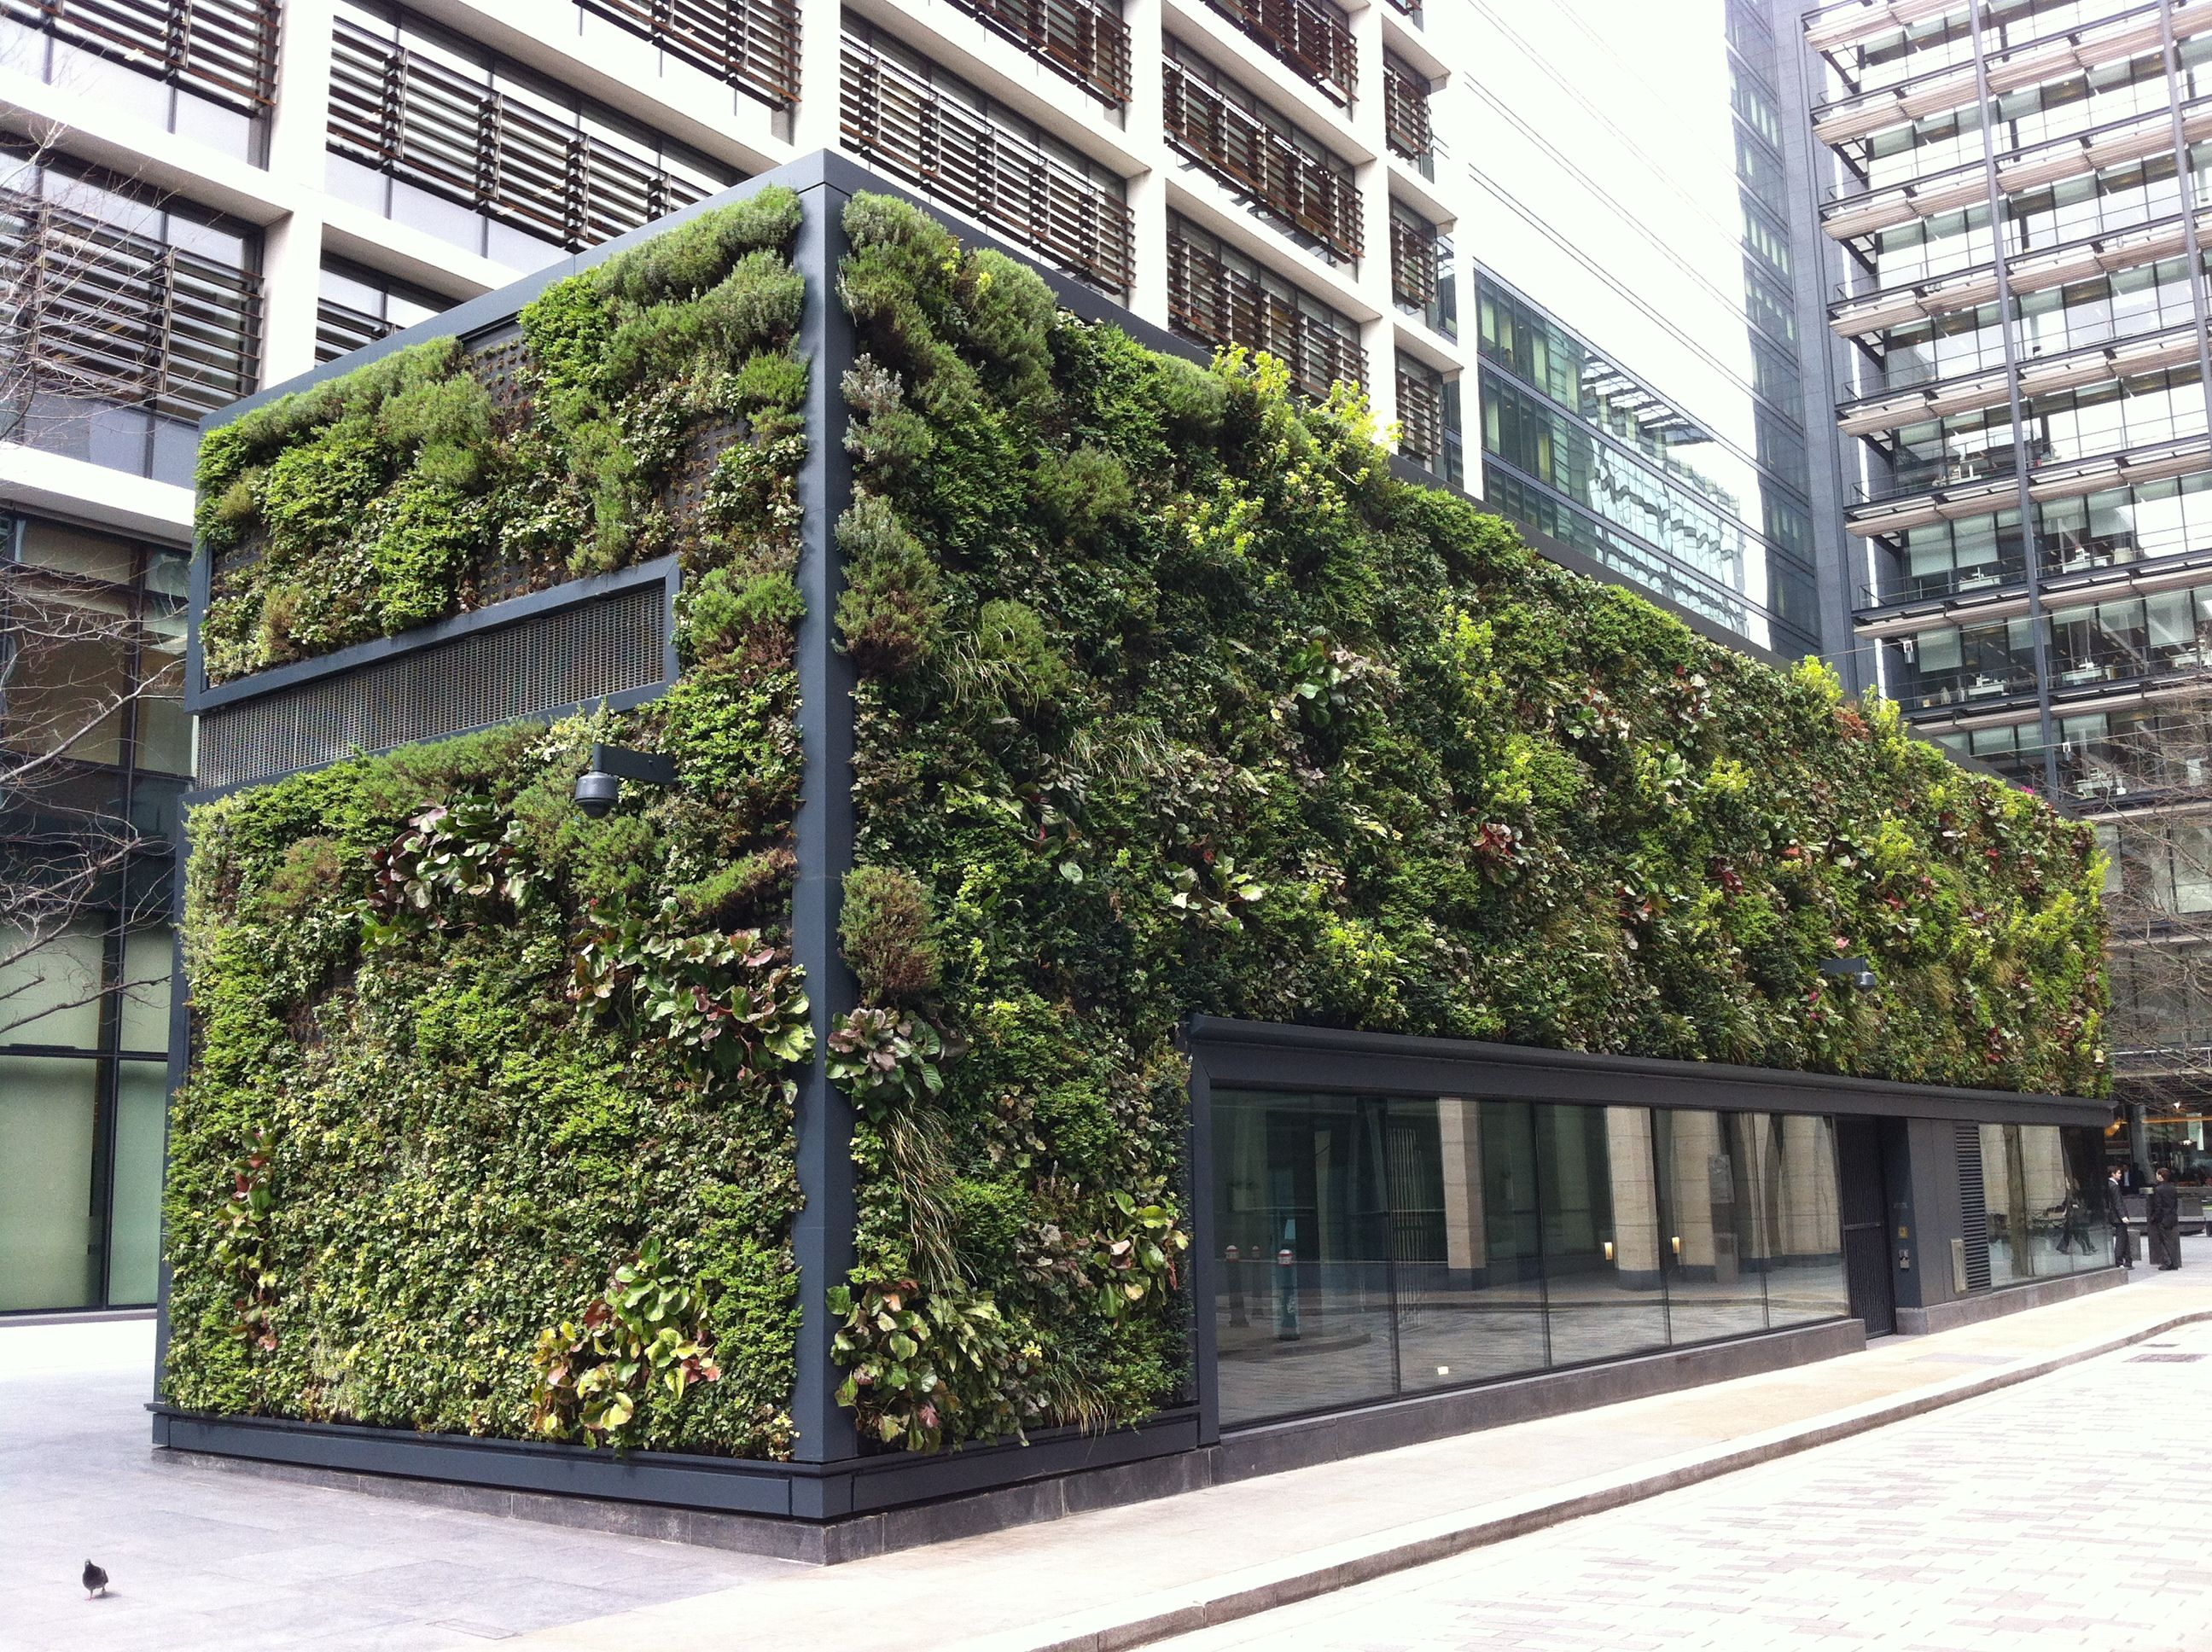 Building in new square london covered with plants using - How to build a living wall ...